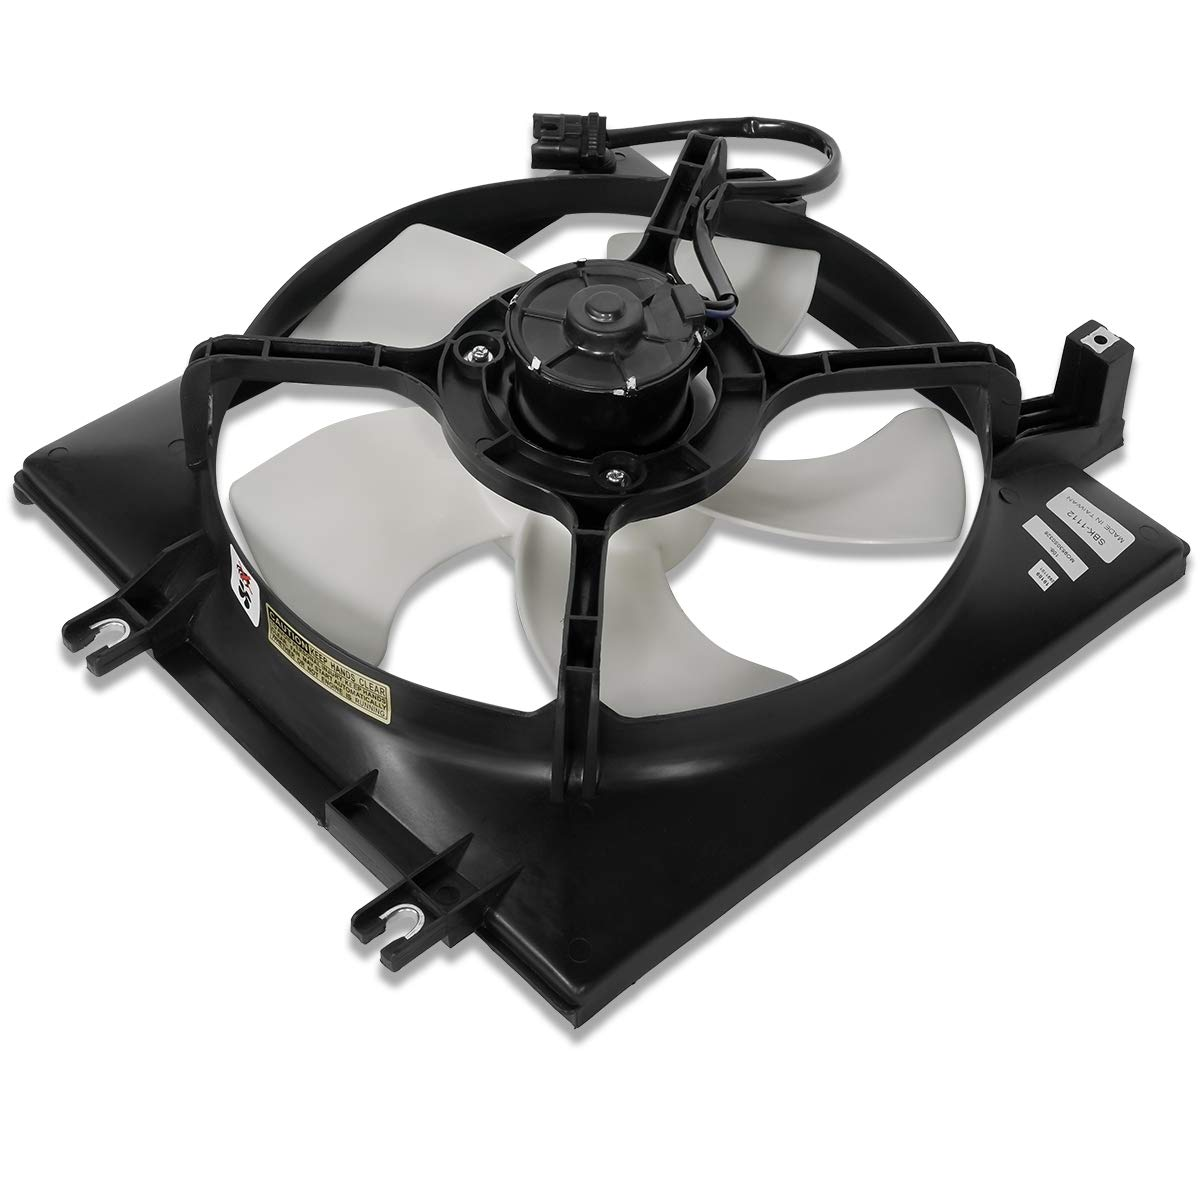 SU3115119 OE Style AC Condenser Cooling Fan Shroud Assembly for Subaru Forester Impreza 2.5L / Turbo 08-13